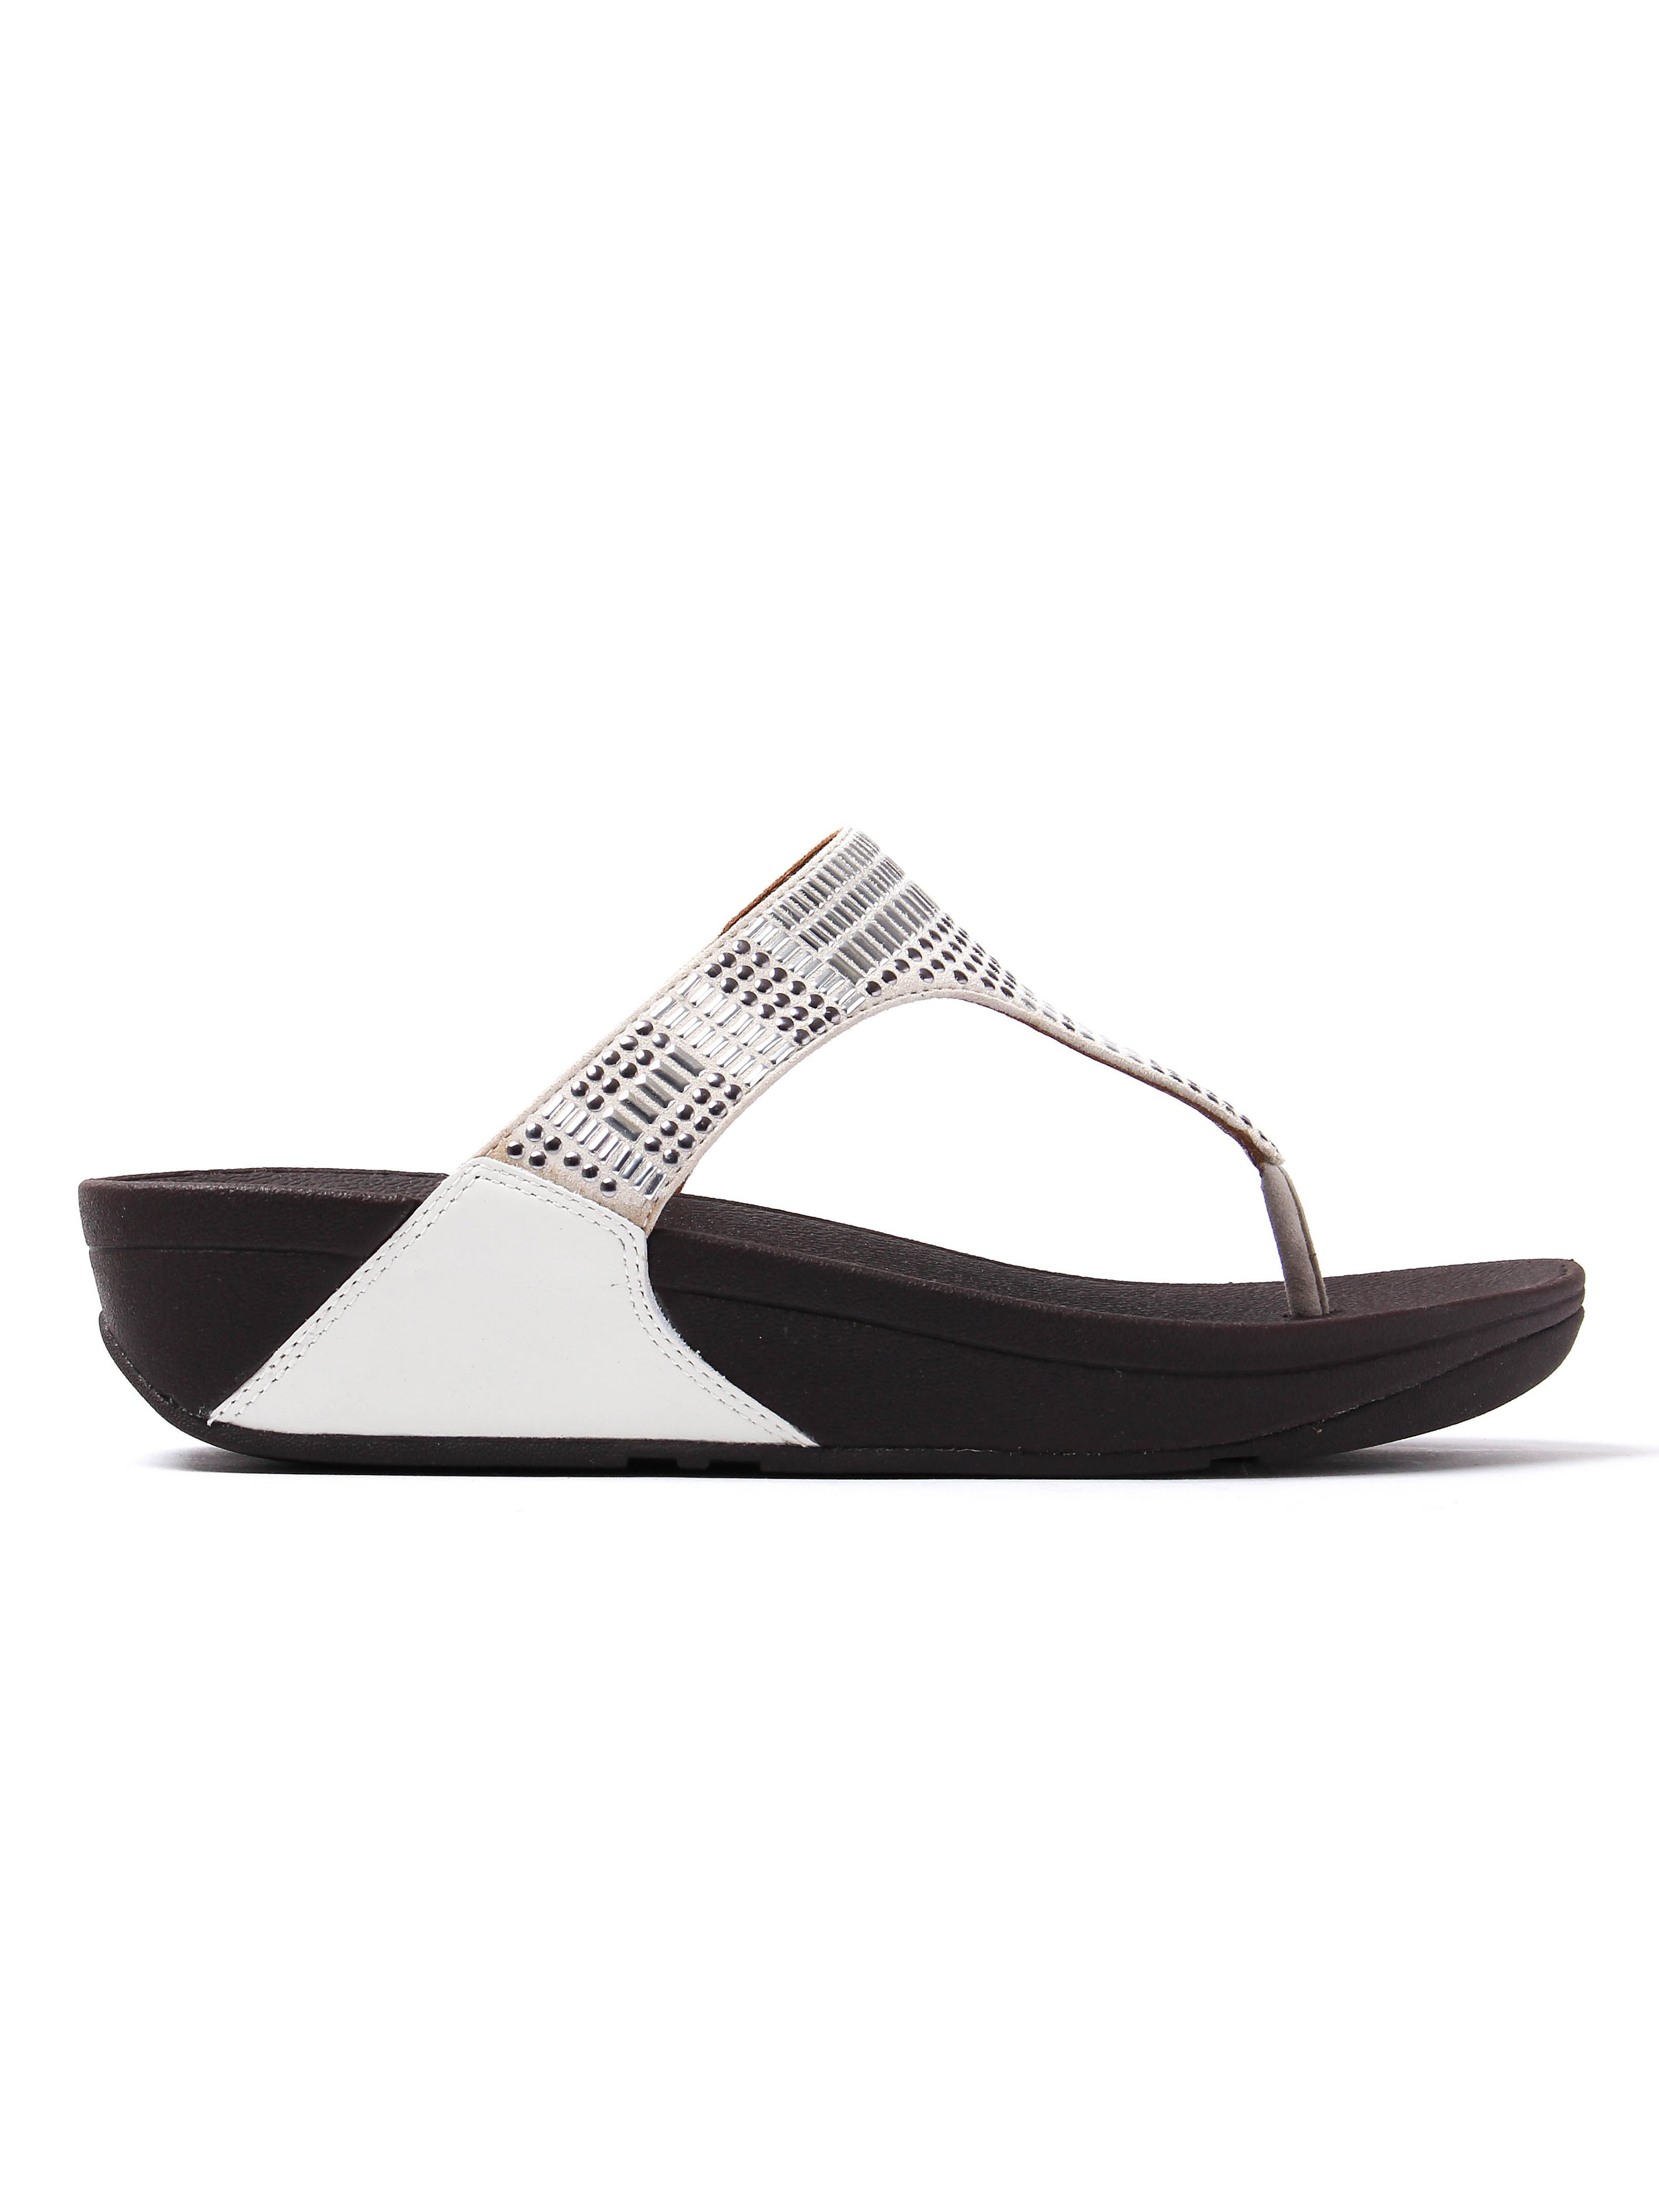 FitFlop Women's Aztek Chada Studded Sandals - Urban White Leather